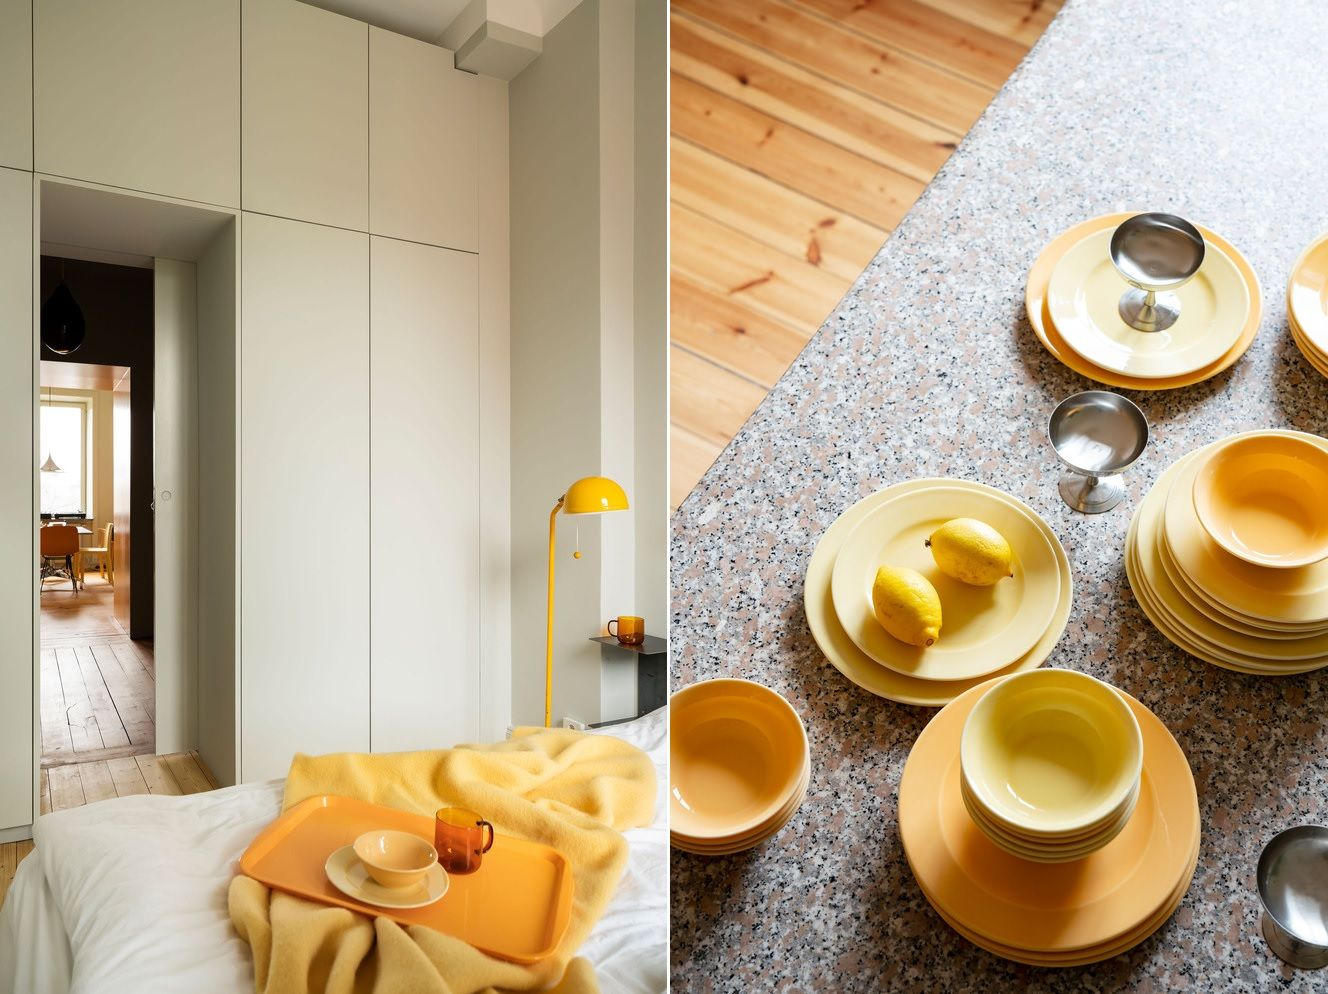 Yellow is not just the color of the furniture and wall modules. It's the main accent color for the whole apartment